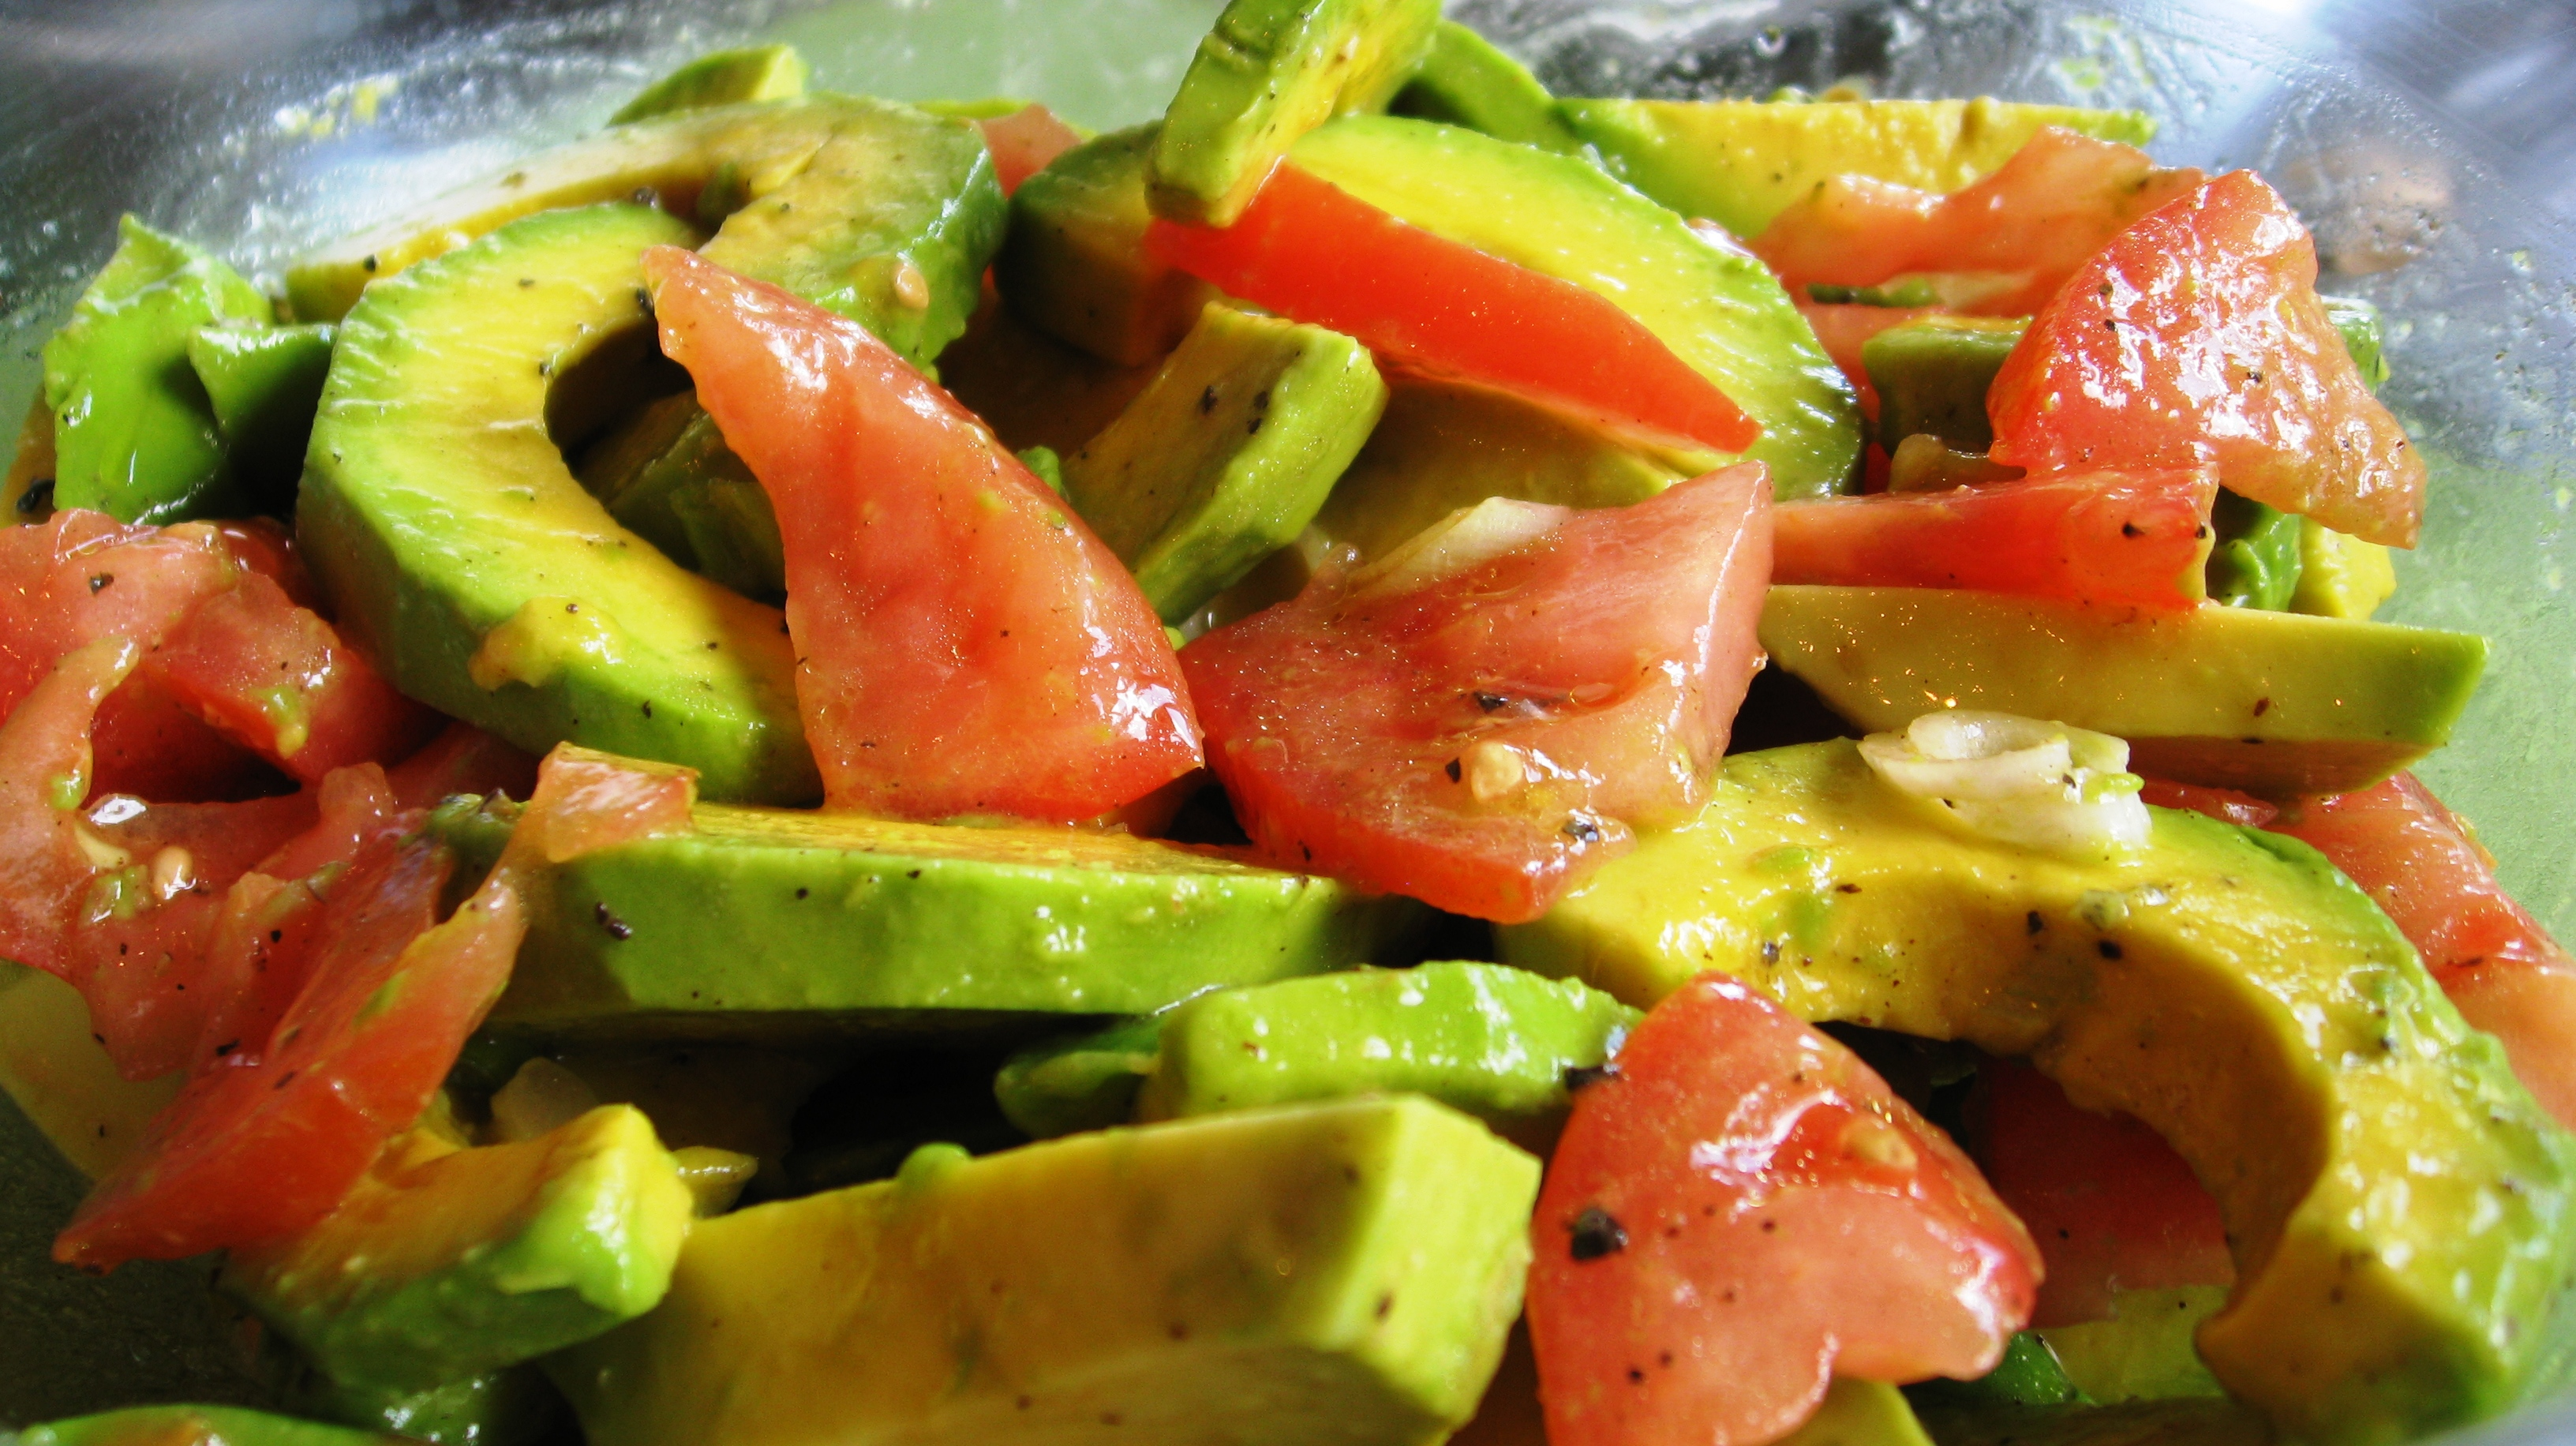 ... de Agucate y Tomate (Avocado and Tomato Salad) – Nutty Kitchen